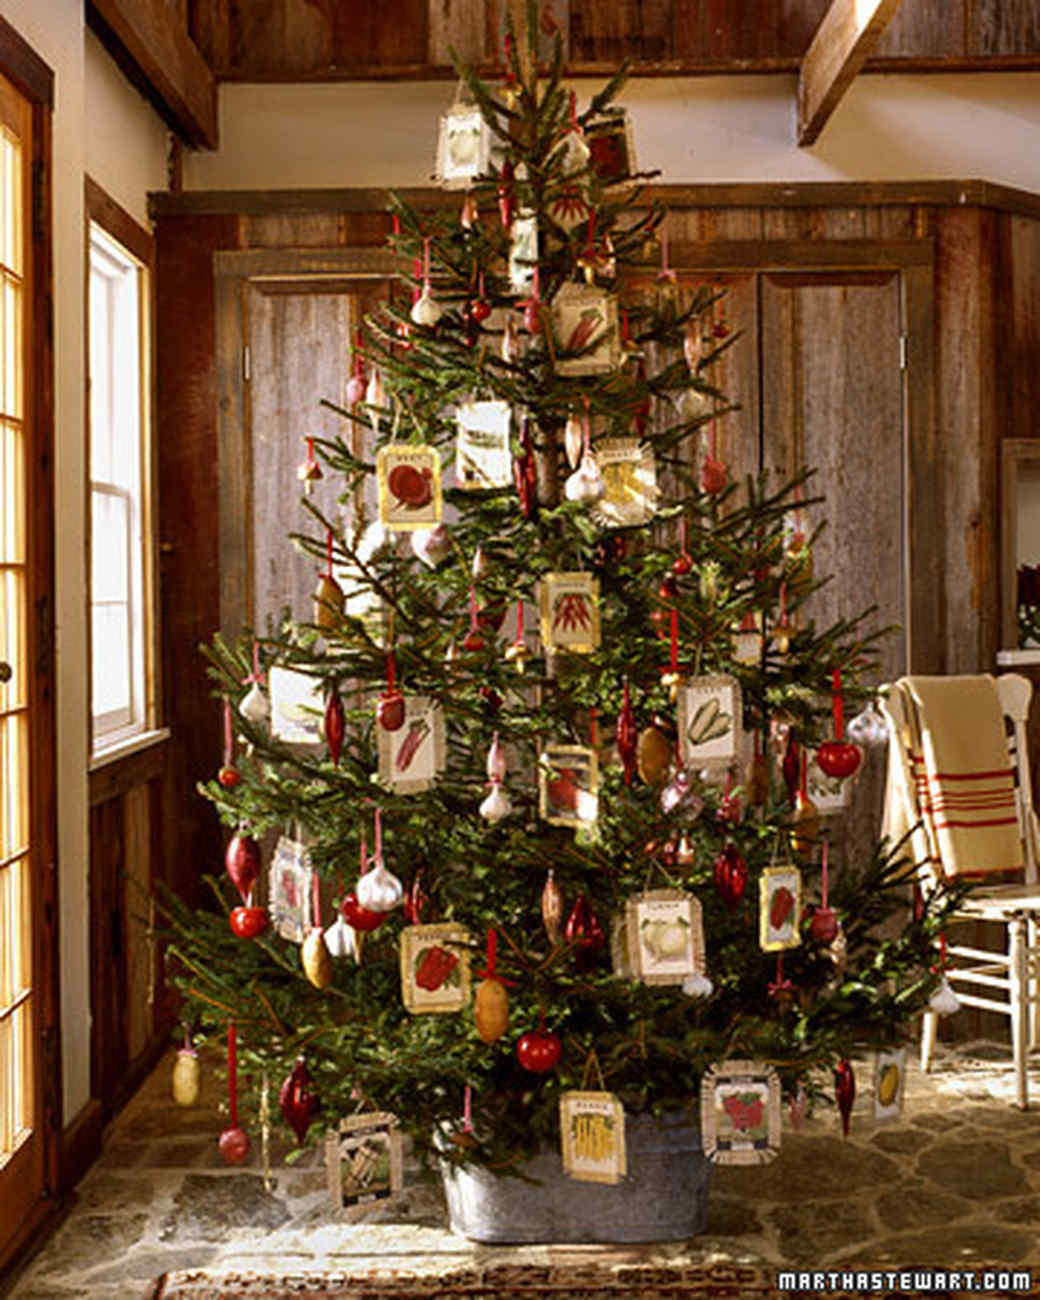 Holiday Home Design Ideas: 25 Creative Christmas Tree Decorating Ideas